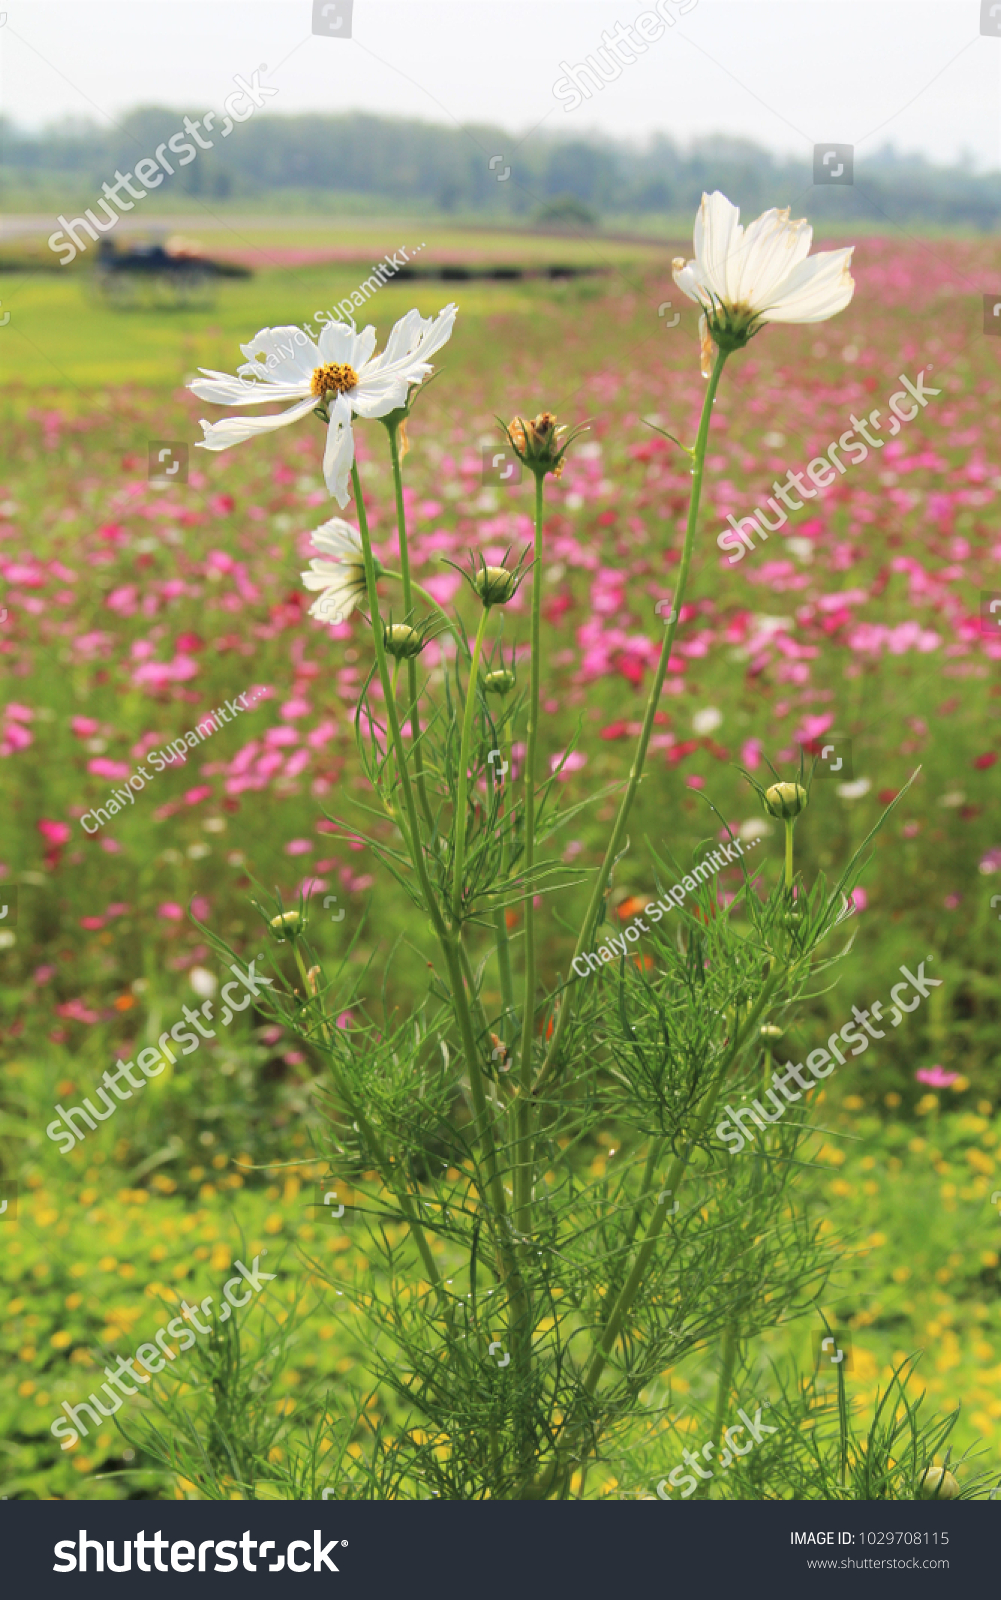 White Cutter Flowers Field Pink Flowers Stock Photo Image Royalty